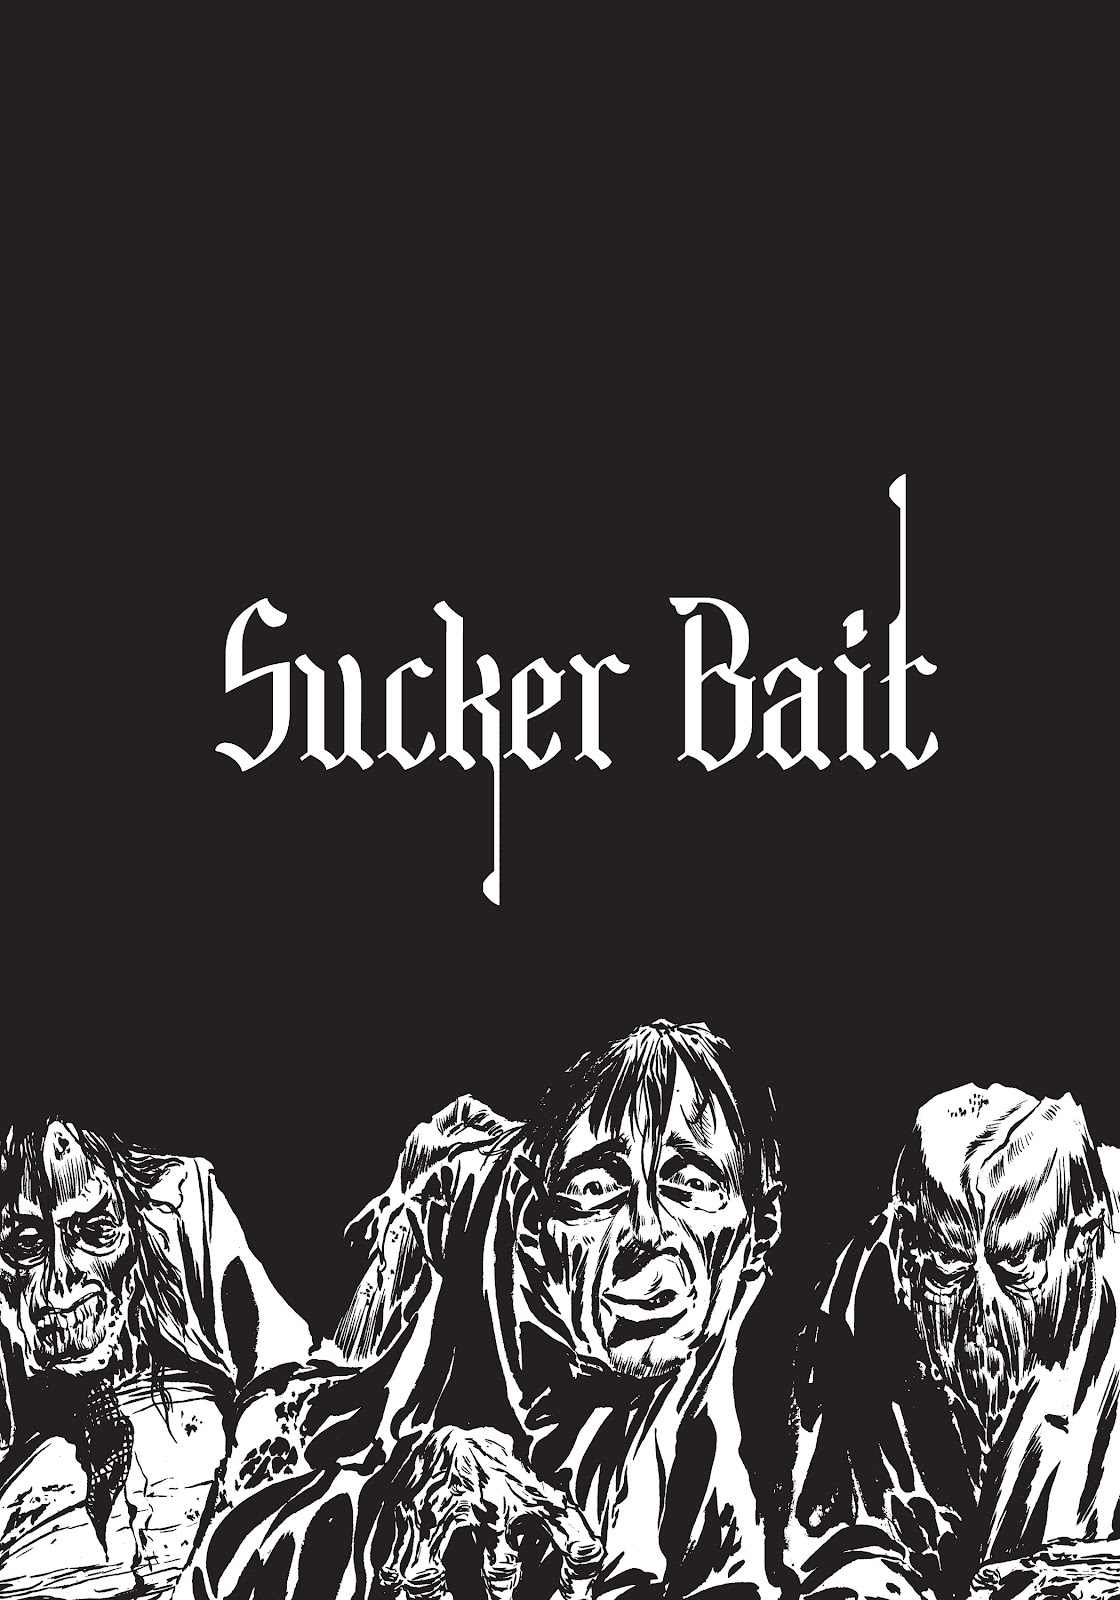 Read online Sucker Bait and Other Stories comic -  Issue # TPB (Part 1) - 2